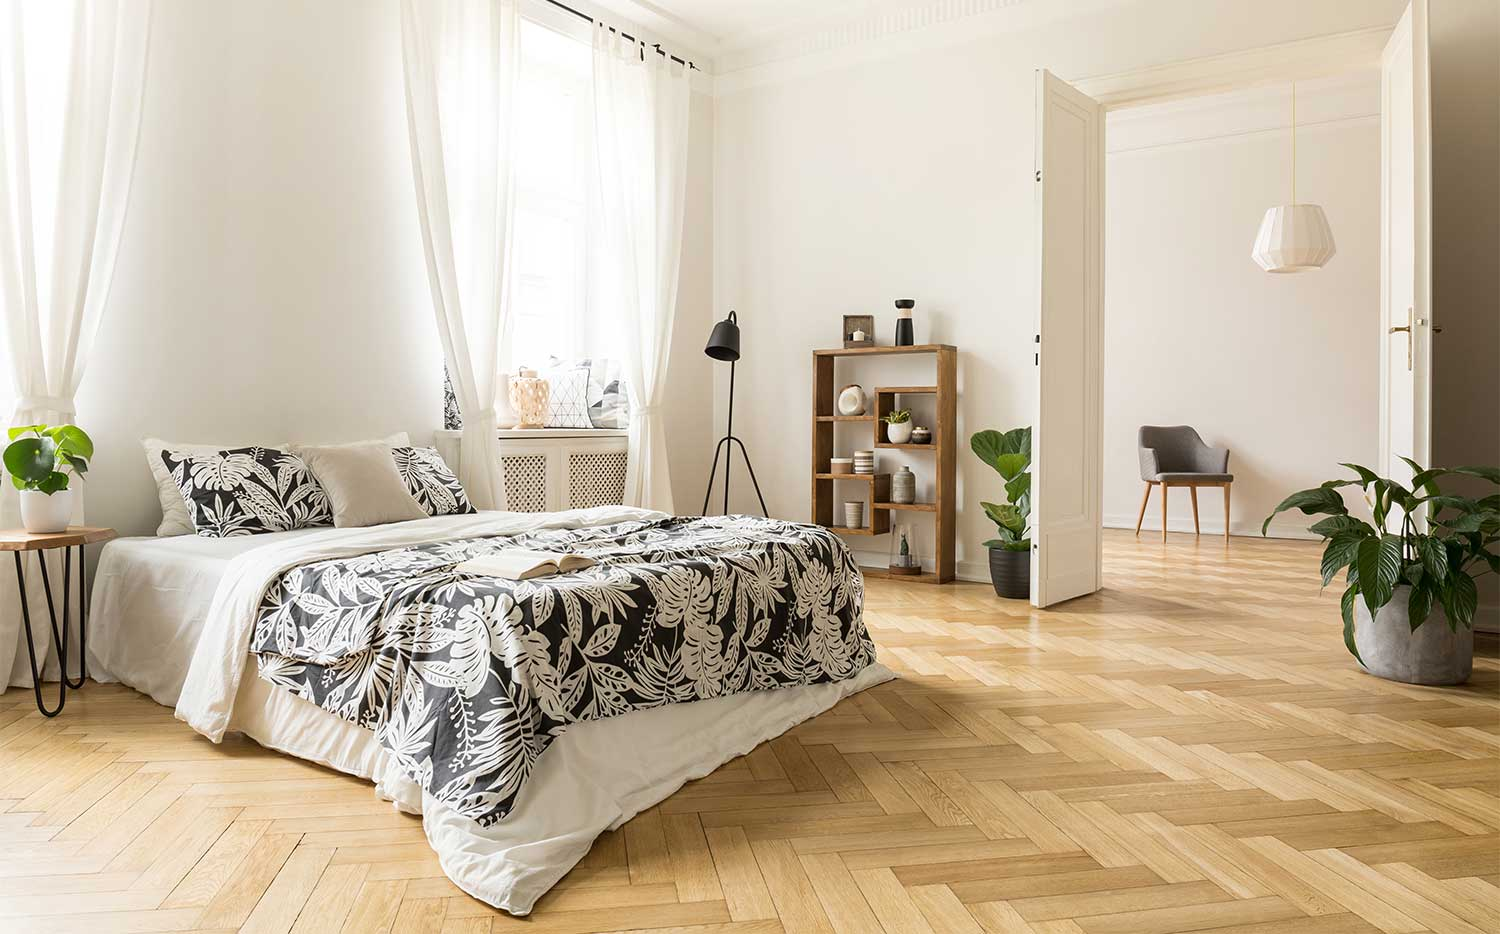 Herringbone engineered hardwood flooring in a modern bedroom.